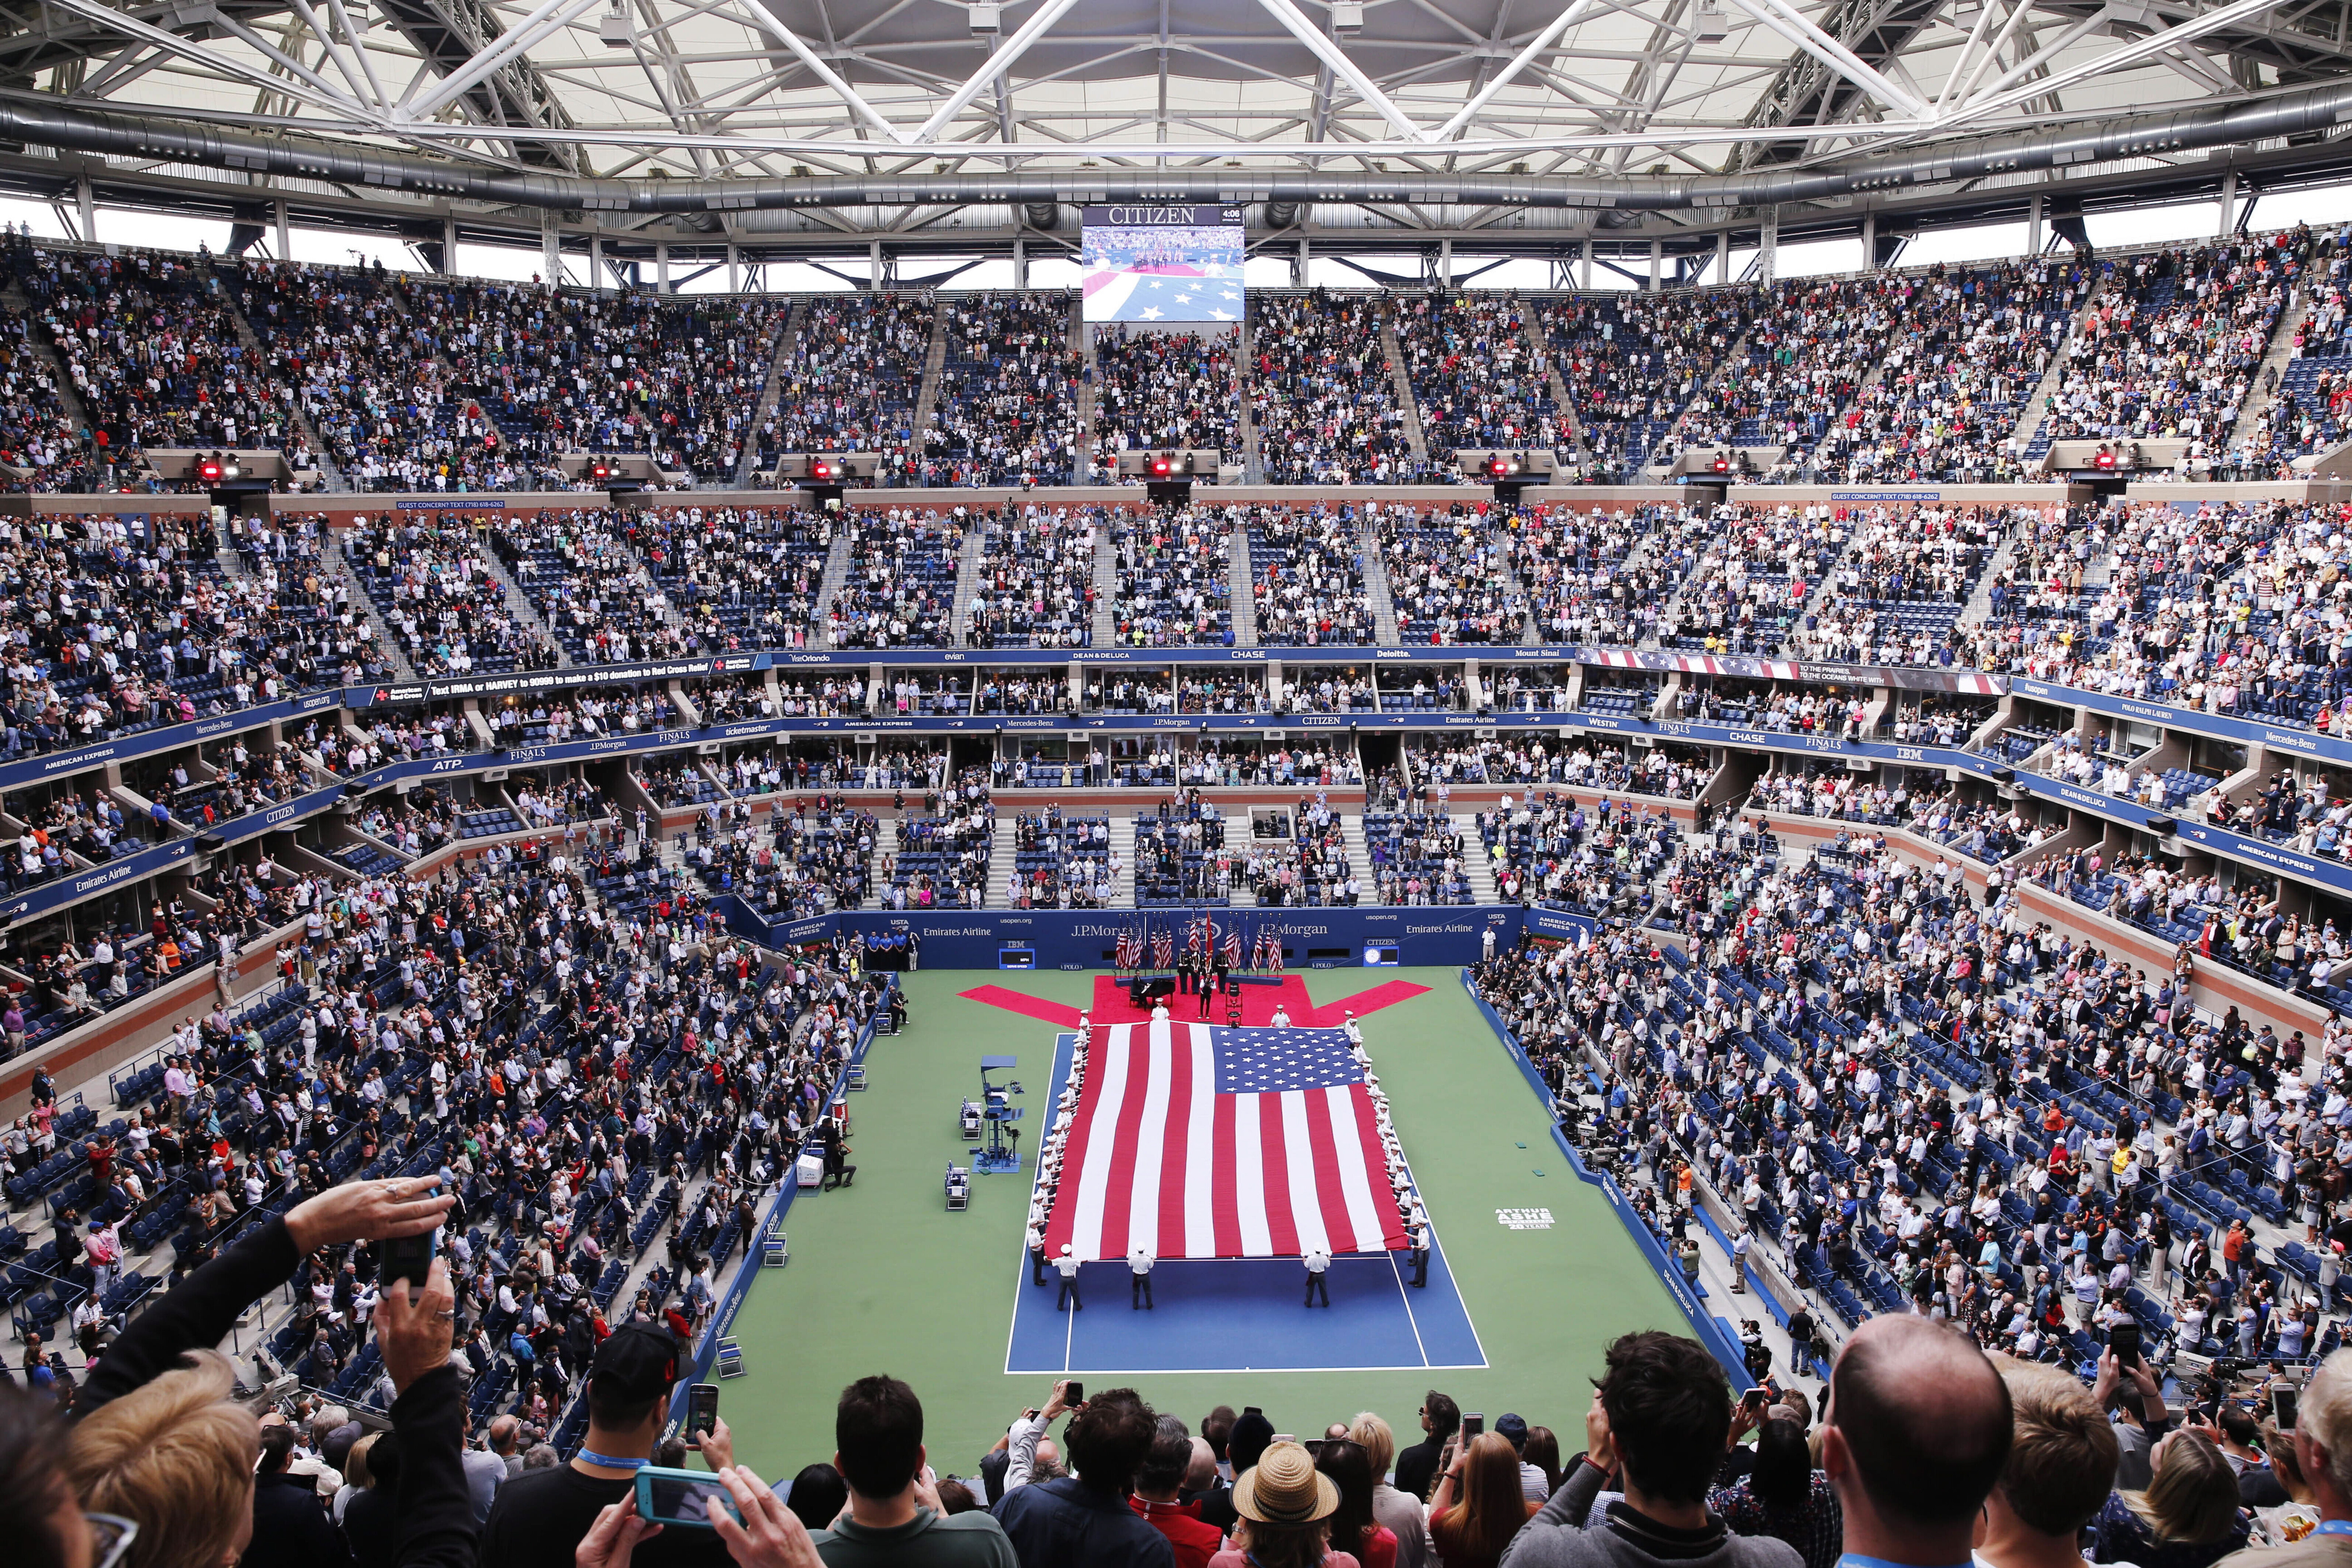 Aerial view of a tennis stadium with big USA flag